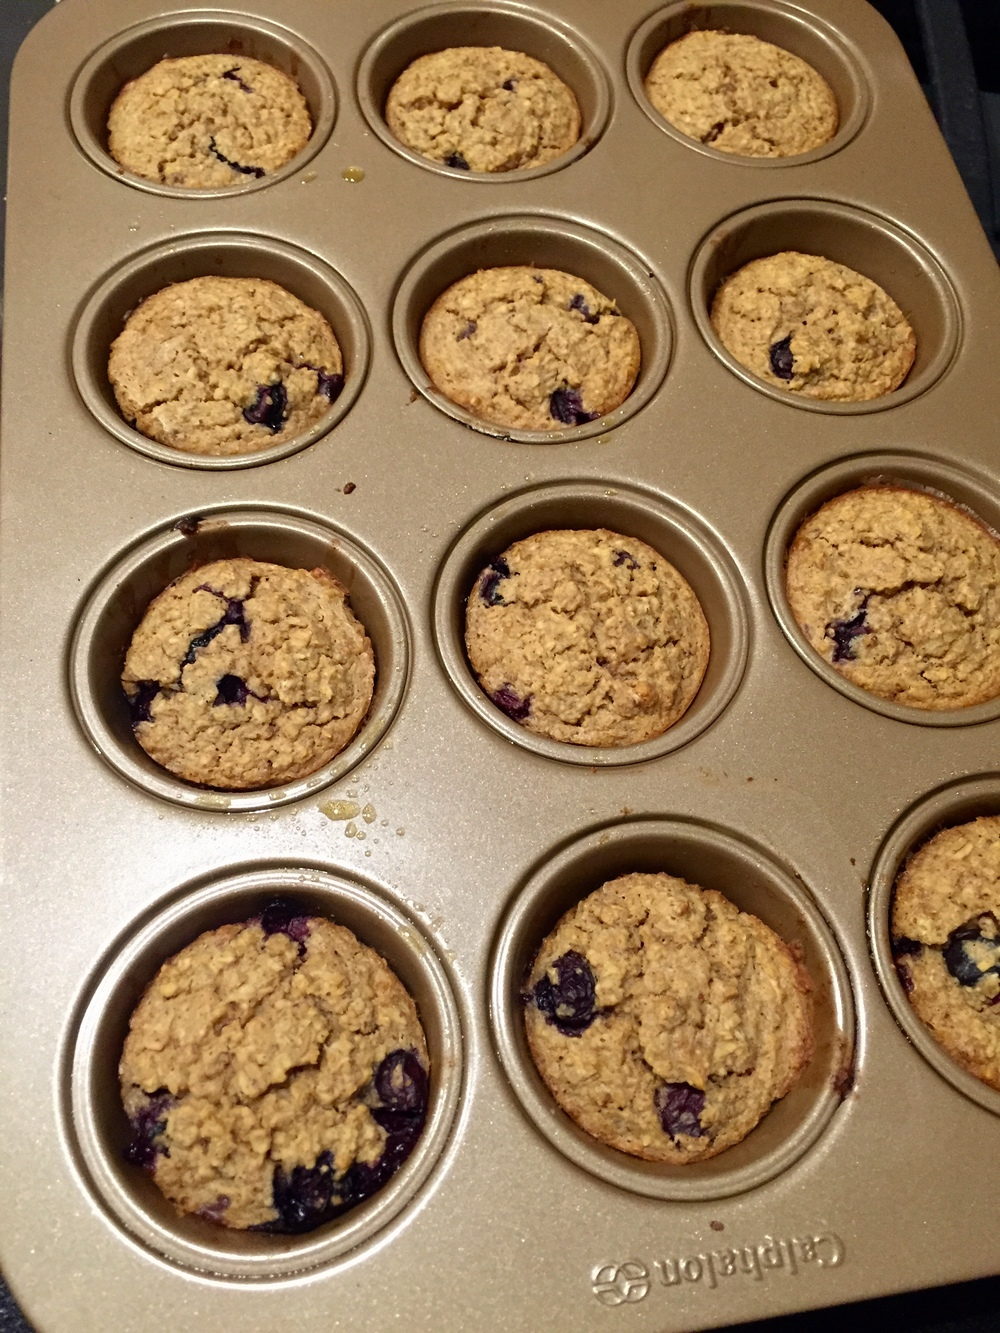 finishedmuffins.jpg